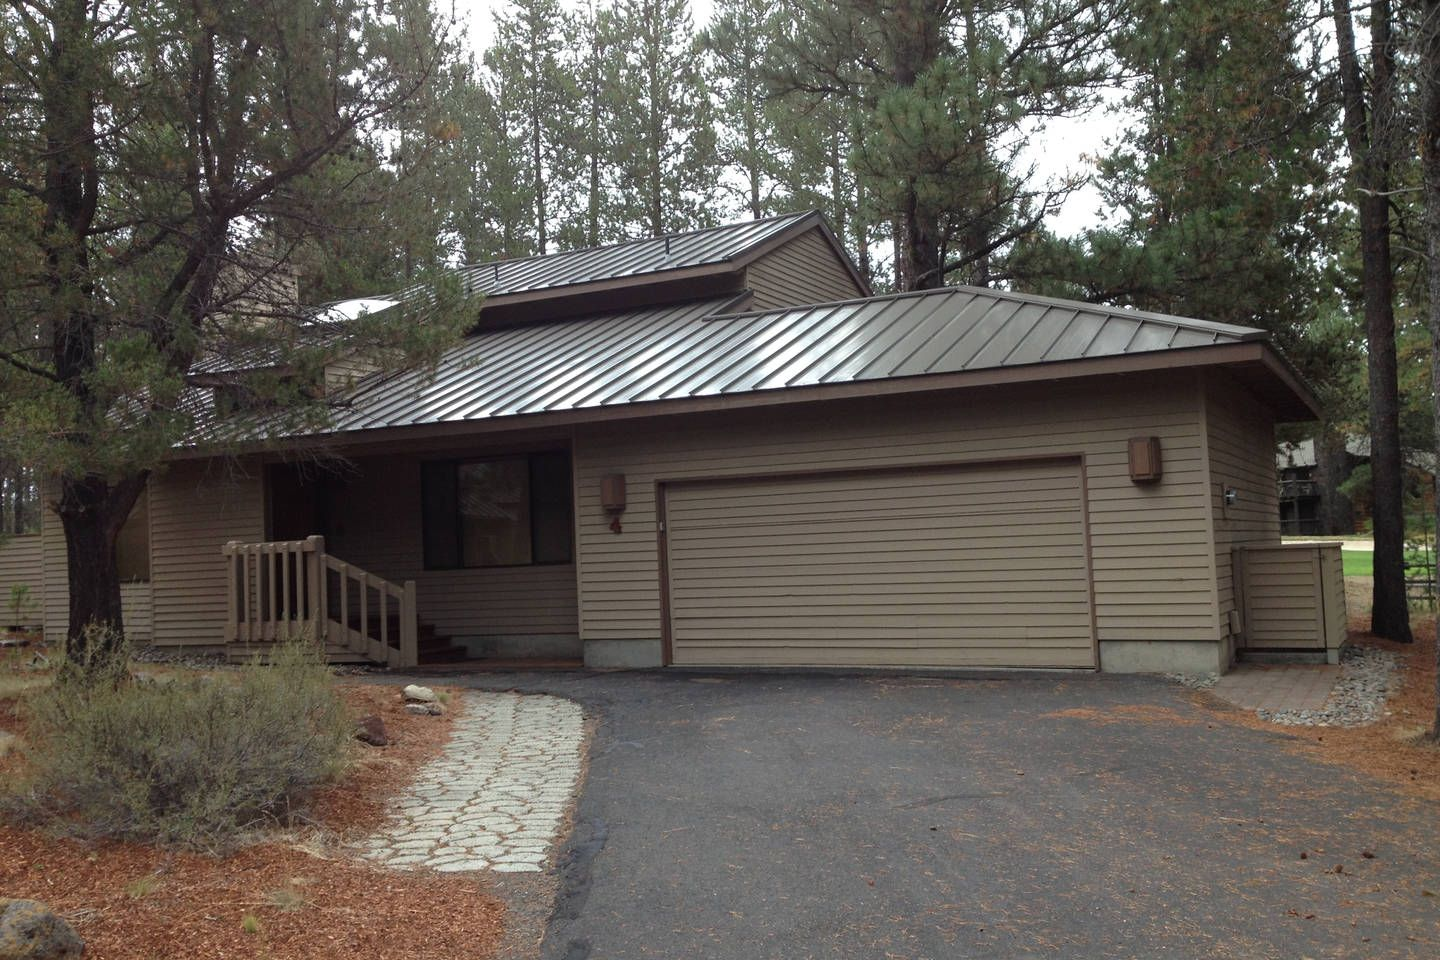 4 Olympic Lane Sunriver Or 97707 In Sunriver Sunriver Vacation Home Oregon Vacation